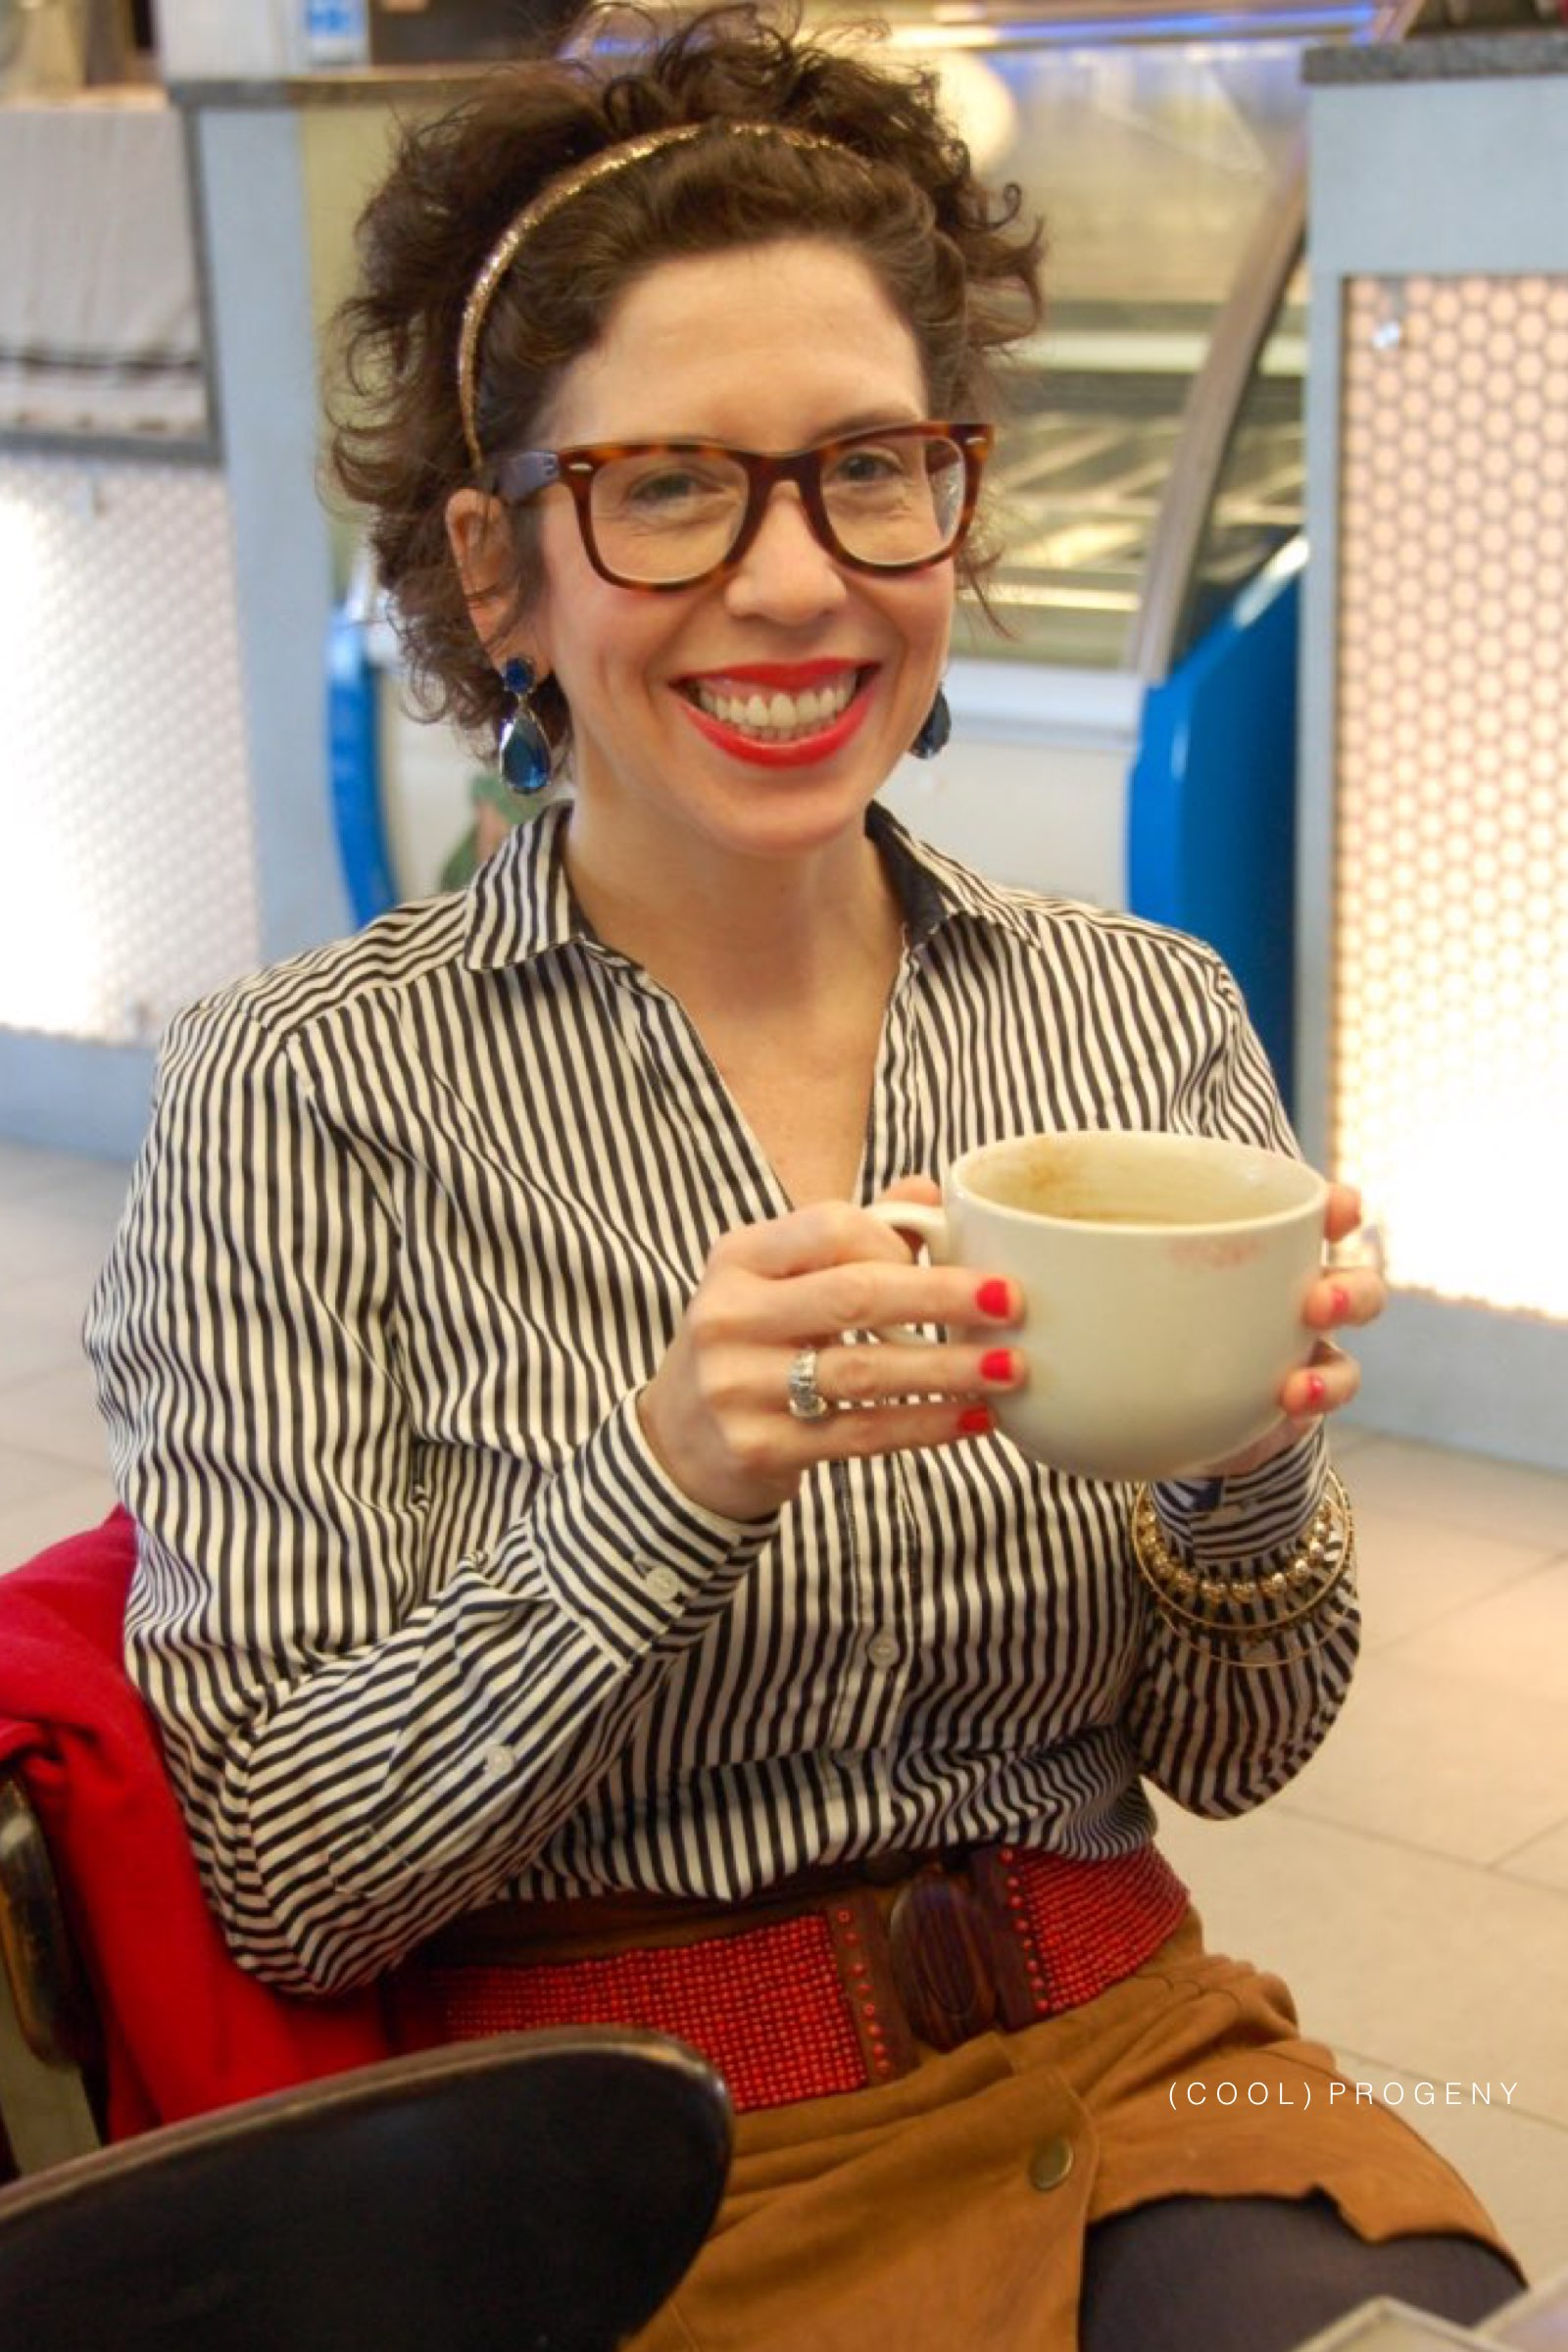 coffee with betsy boyd - (cool) progeny